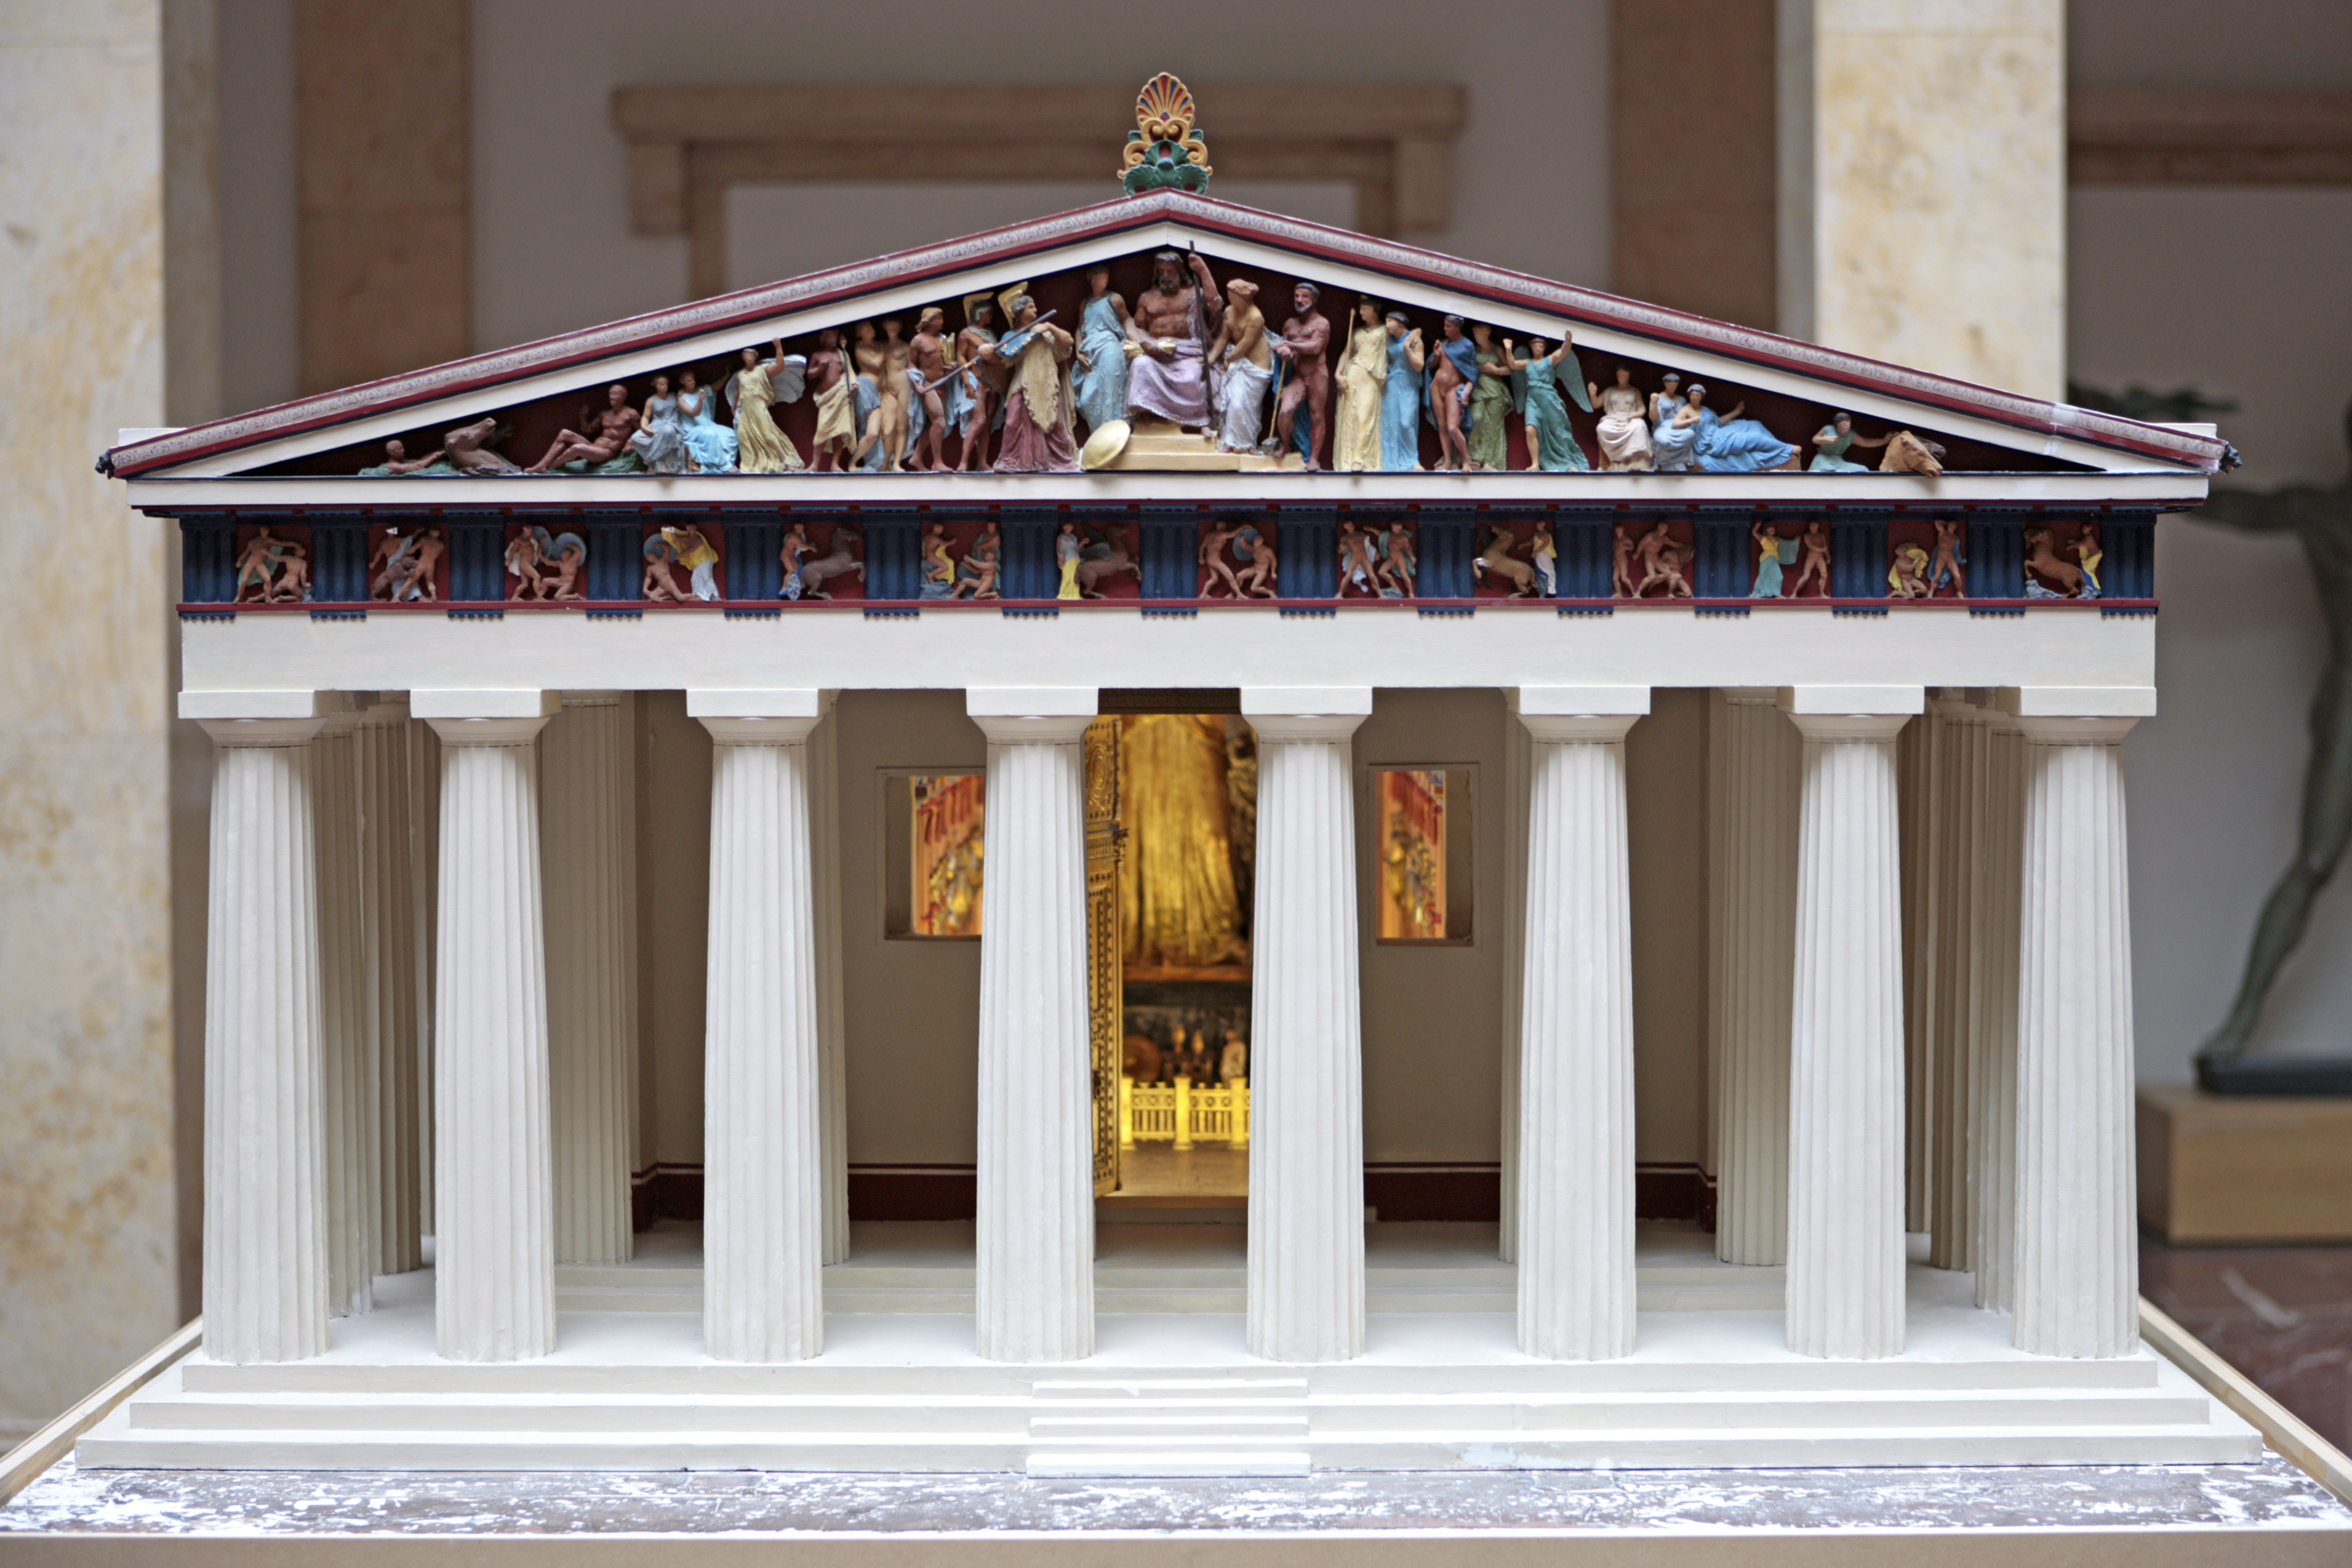 Fig. 1 Reconstruction model of the Athenian Parthenon, facade and cella with the cult image of Athena Parthenos, 19th C, permanent loan by the Metropolitan Museum, NY, in Munich since 2005